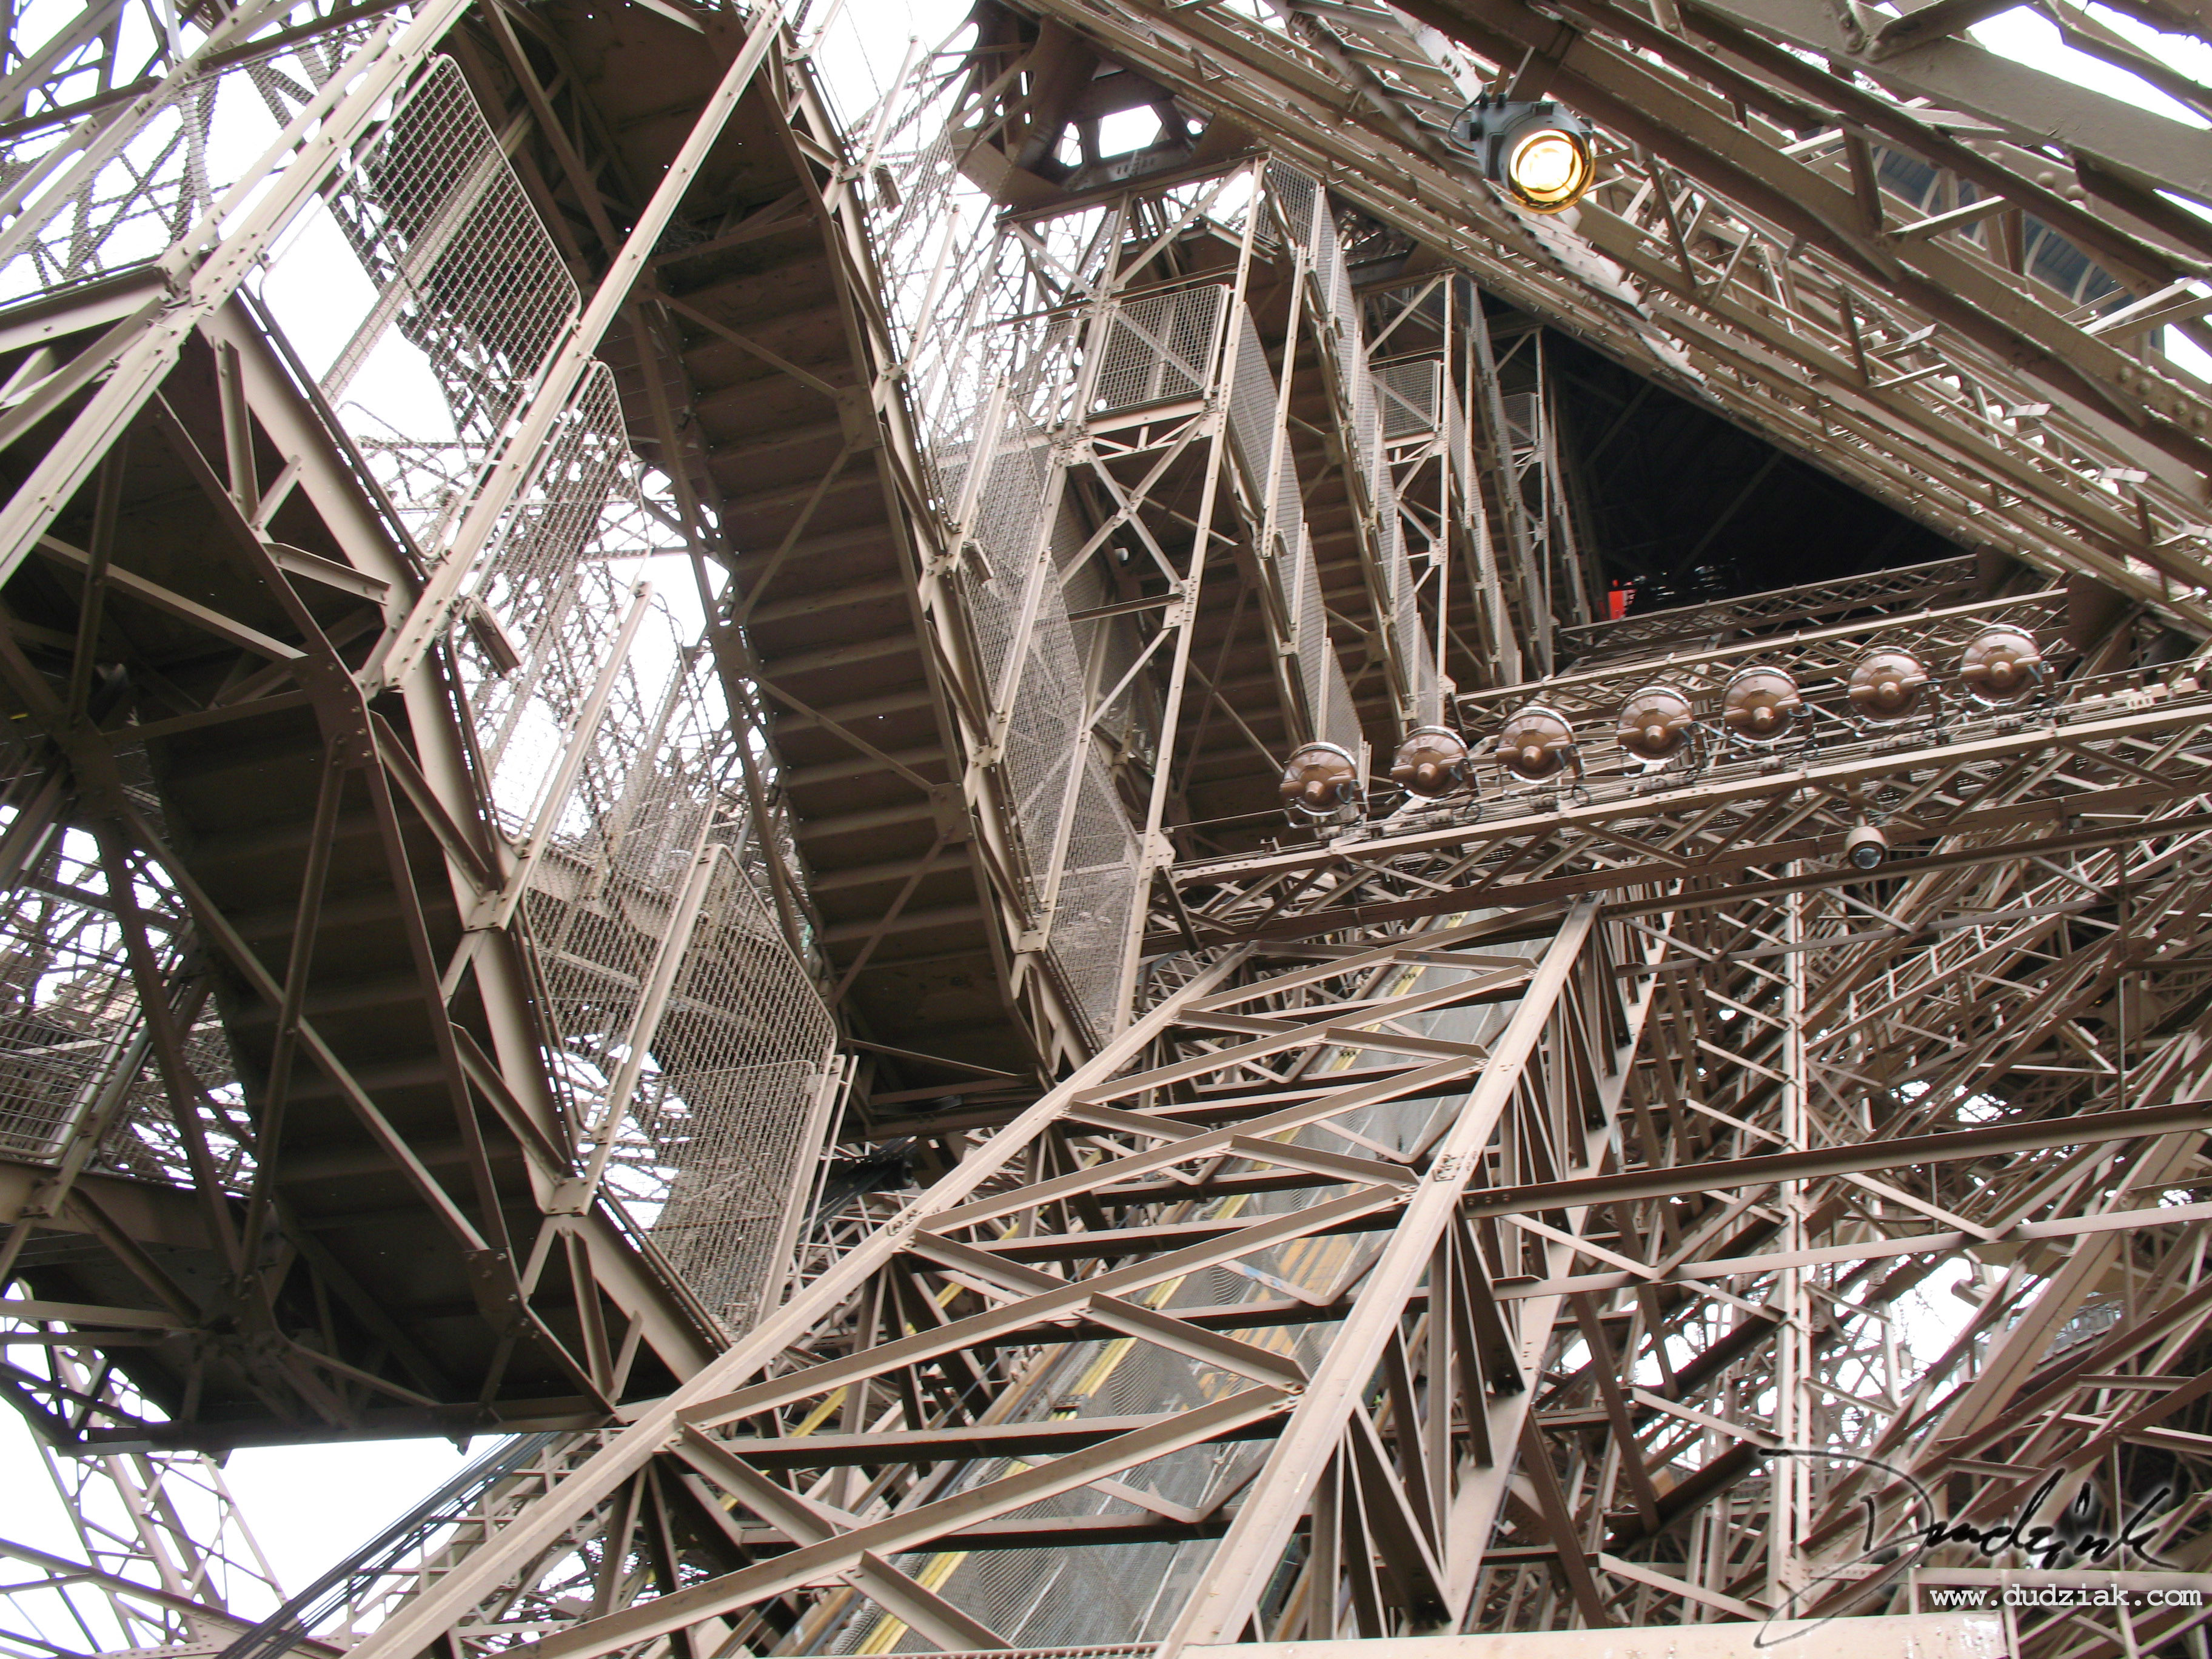 Eiffel tower stairs 3648x2736 for Stair tower